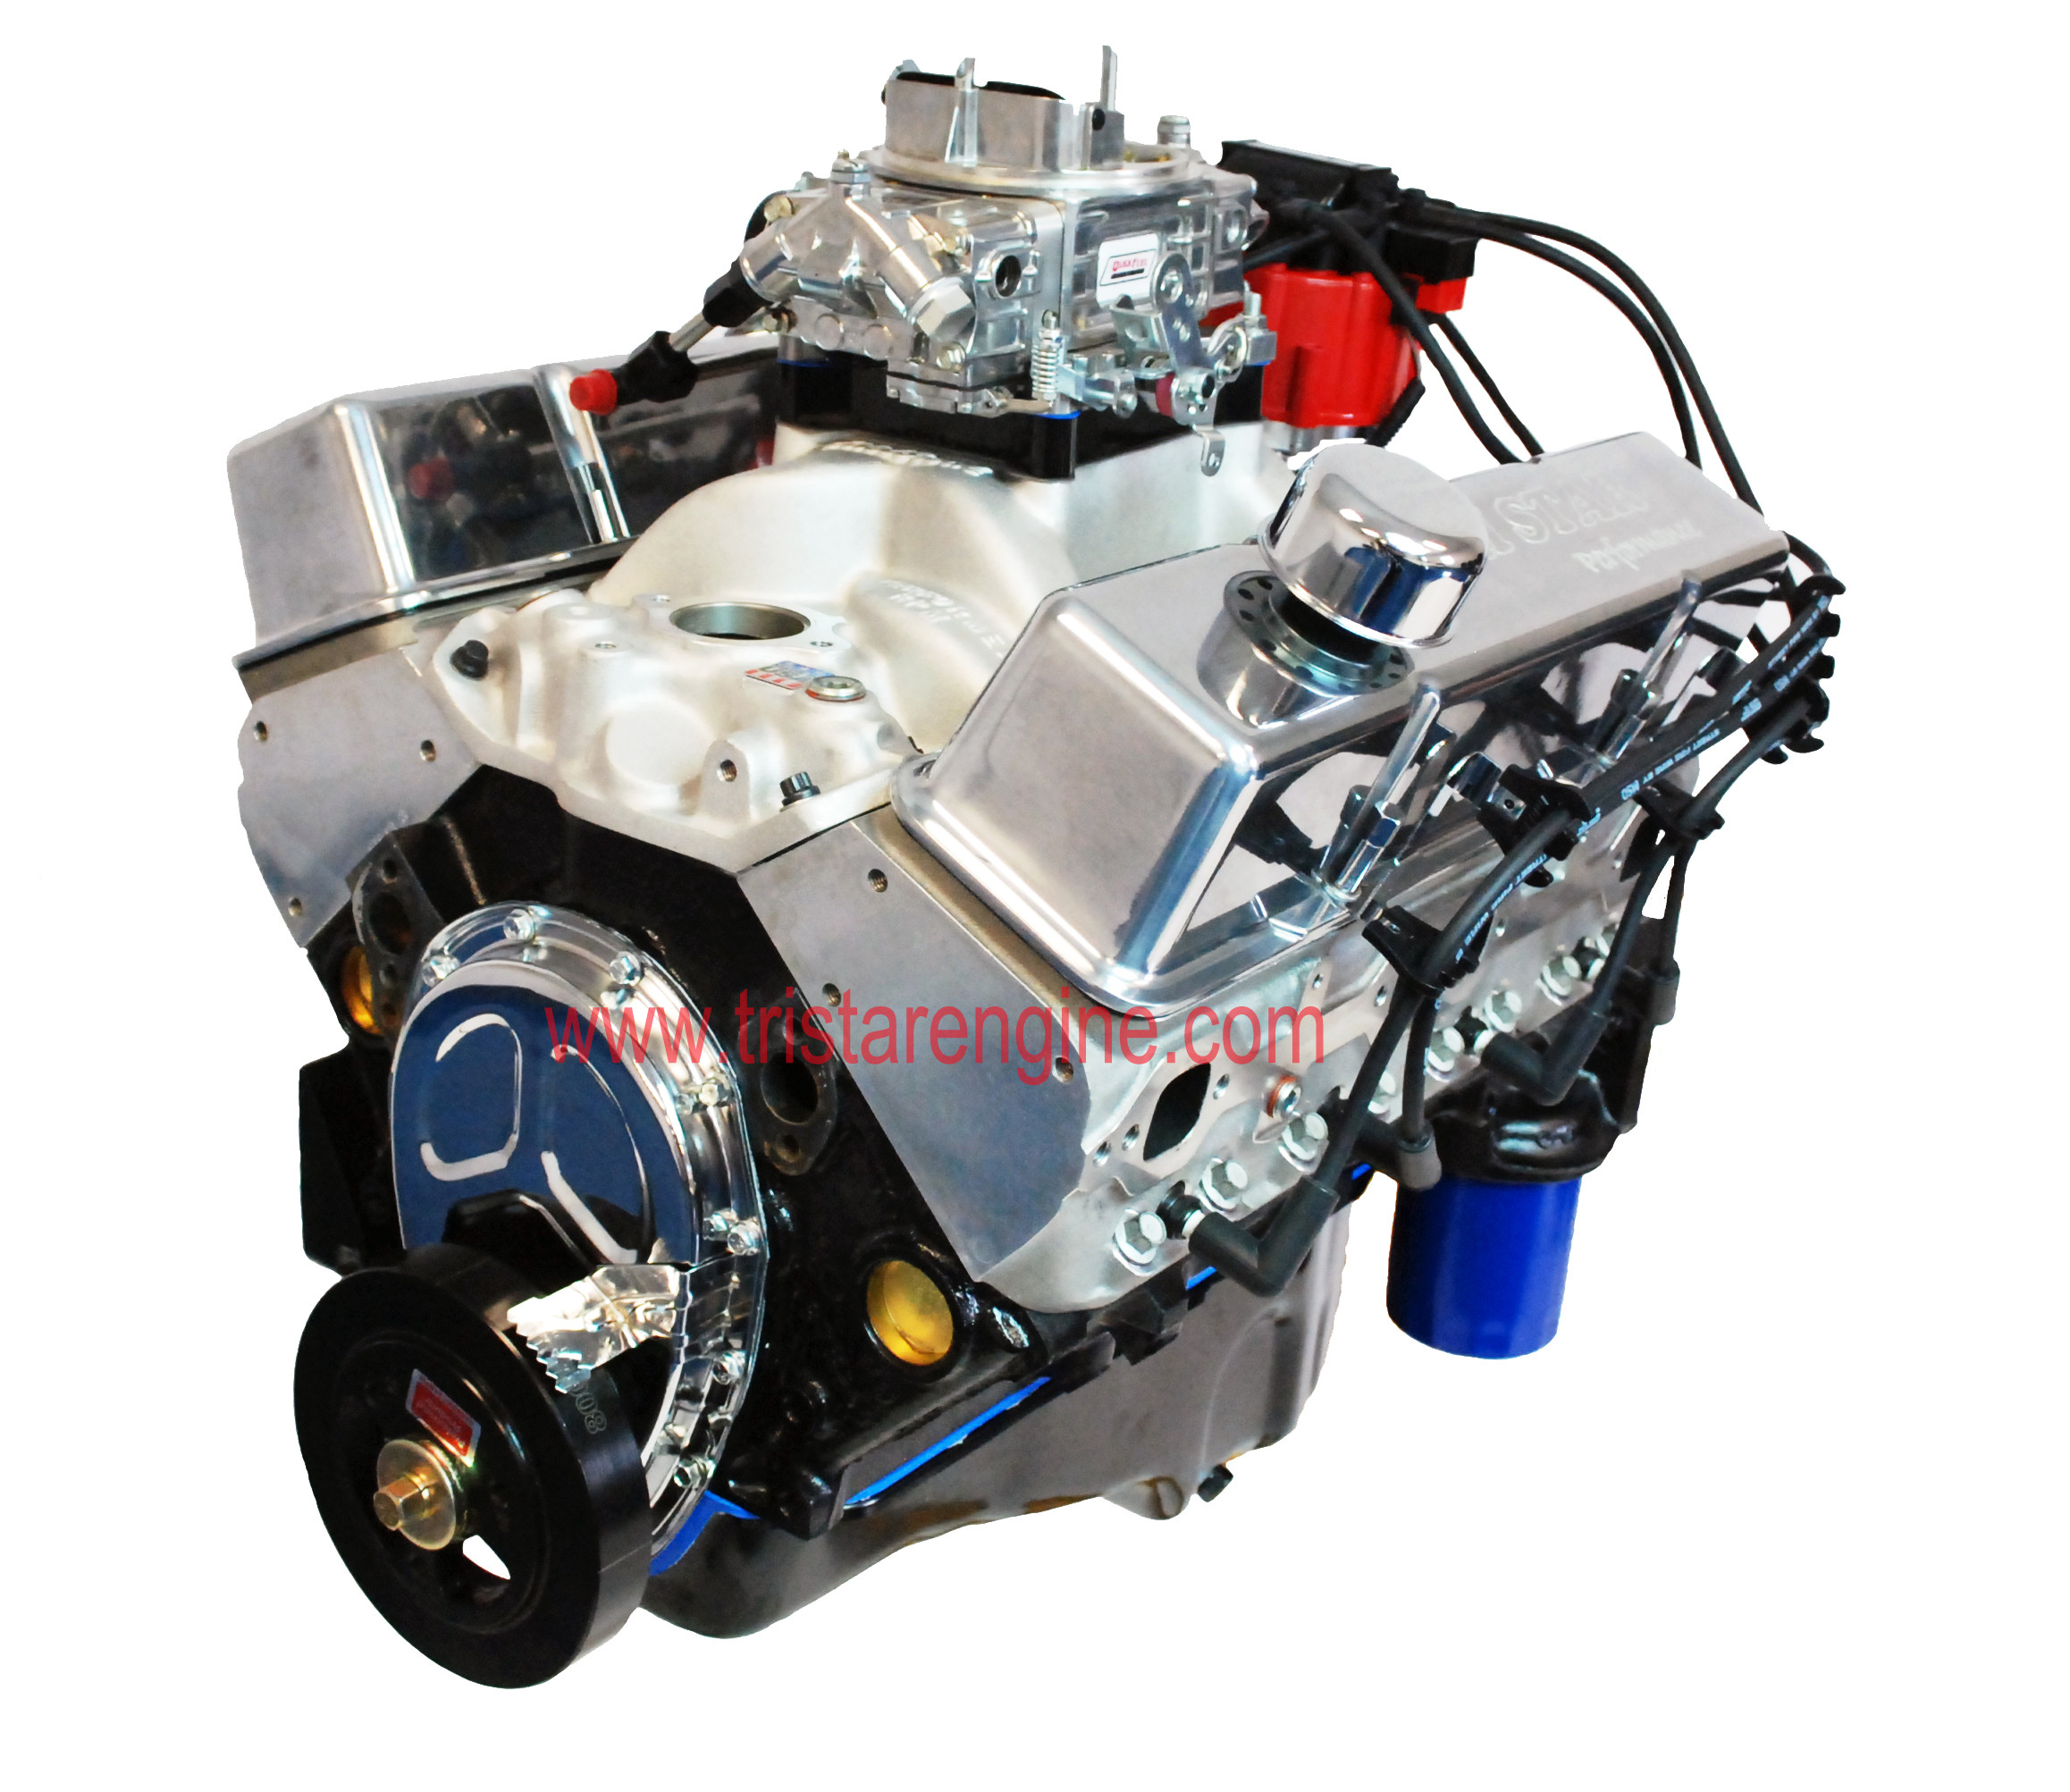 New Engines For Sale >> 355 Crate Engine 355 Chevy Engine For Sale